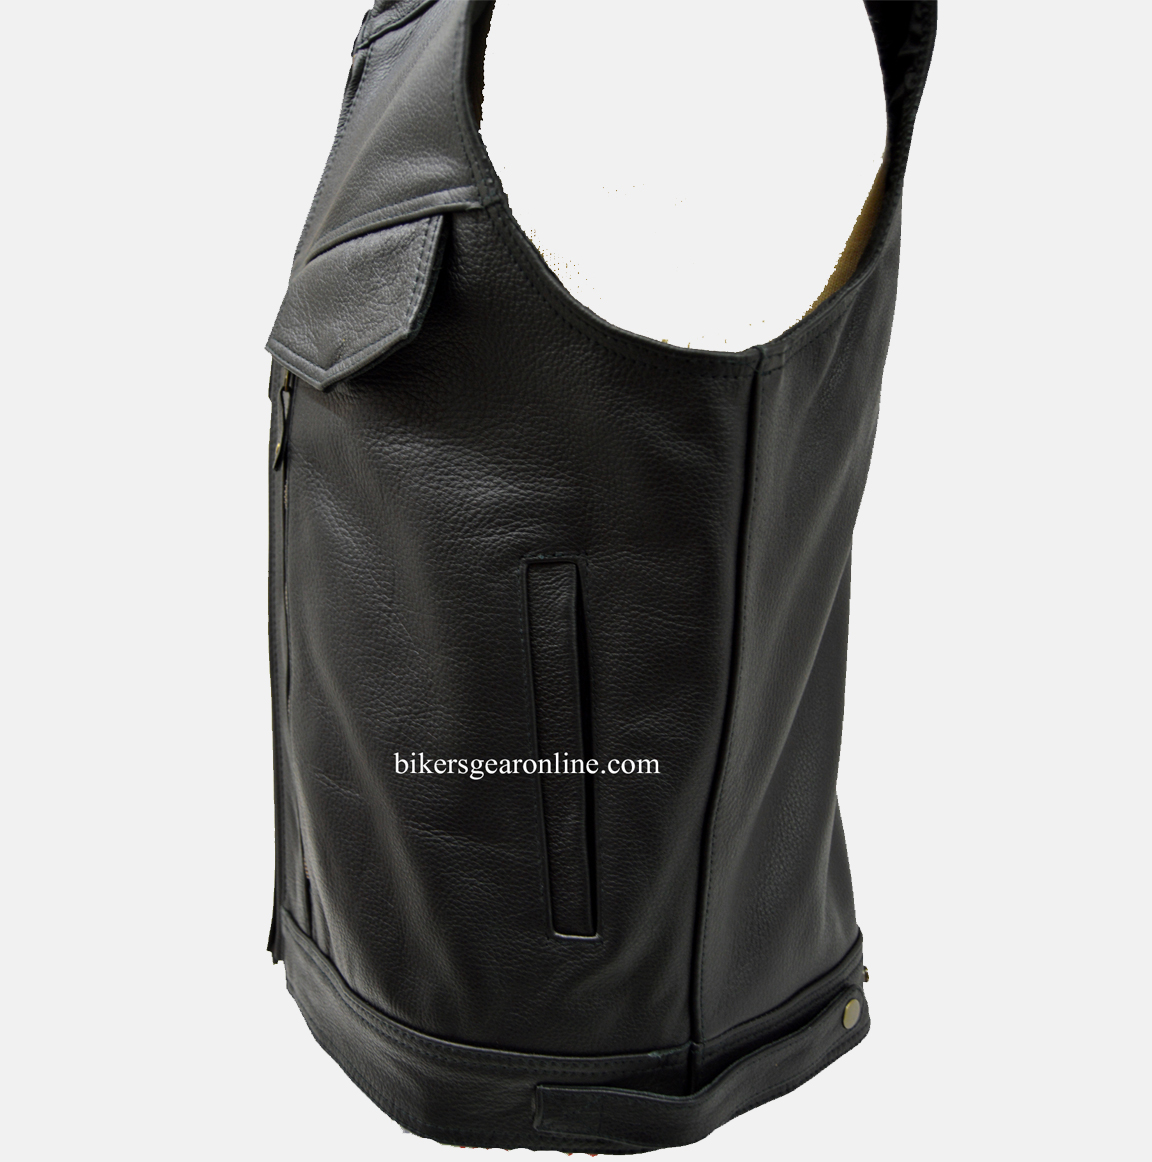 Mens Leather Motorcycle Vest With Gun Pockets